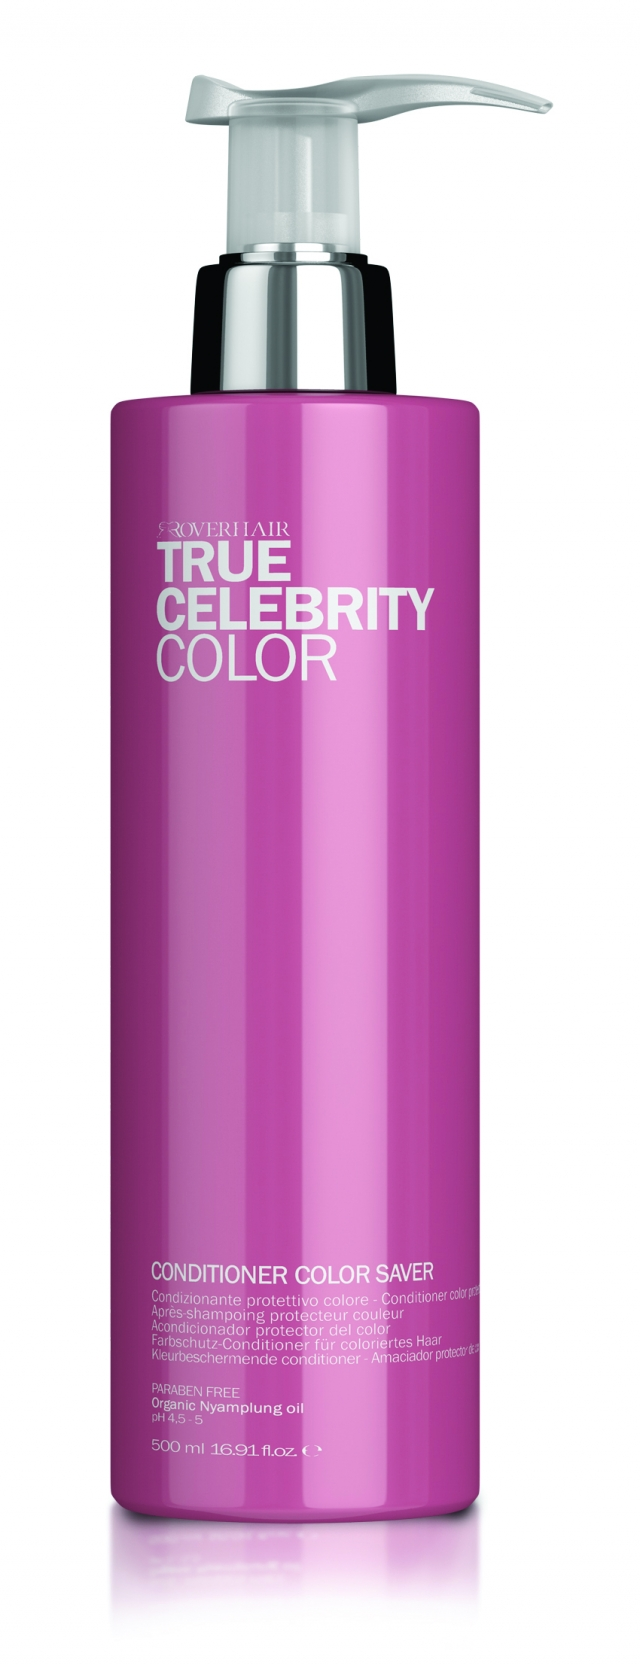 True Celebrity Color Saver Conditioner Image